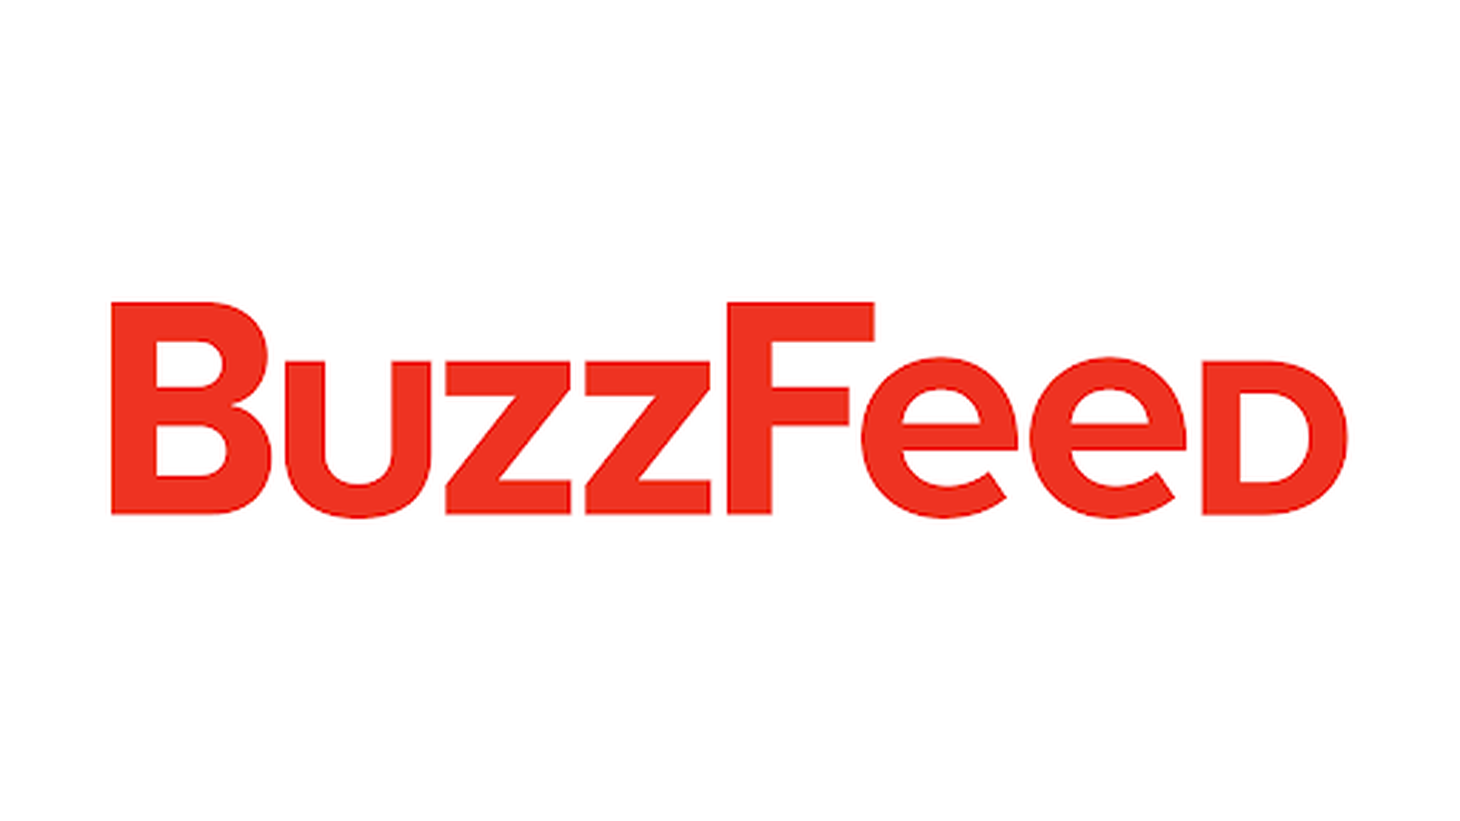 Logo of the website BuzzFeed.